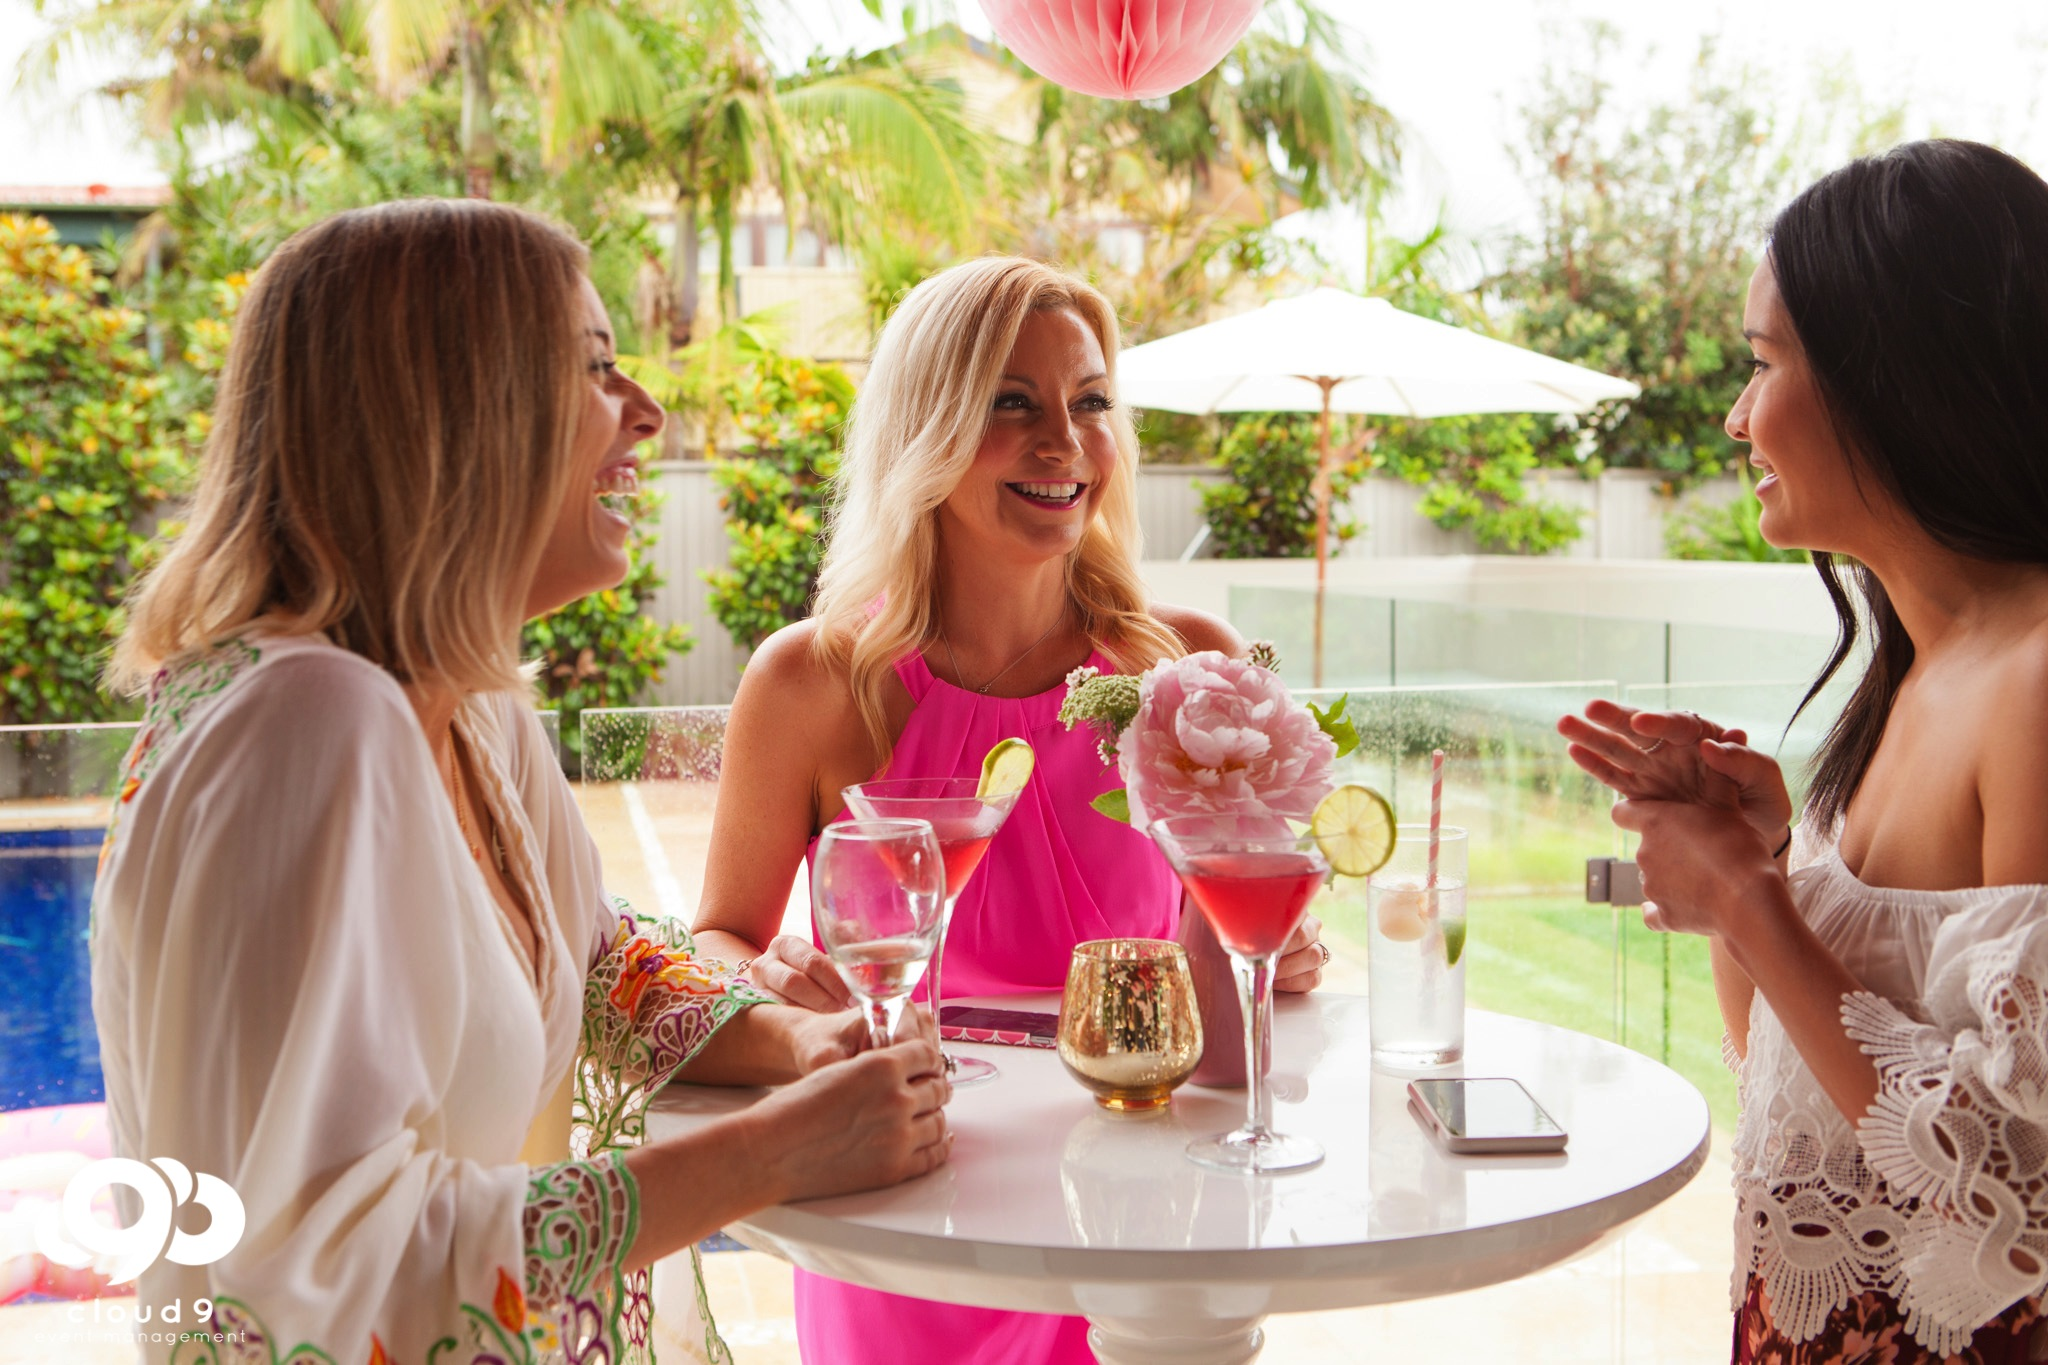 Sipping cocktails Miami beach style party